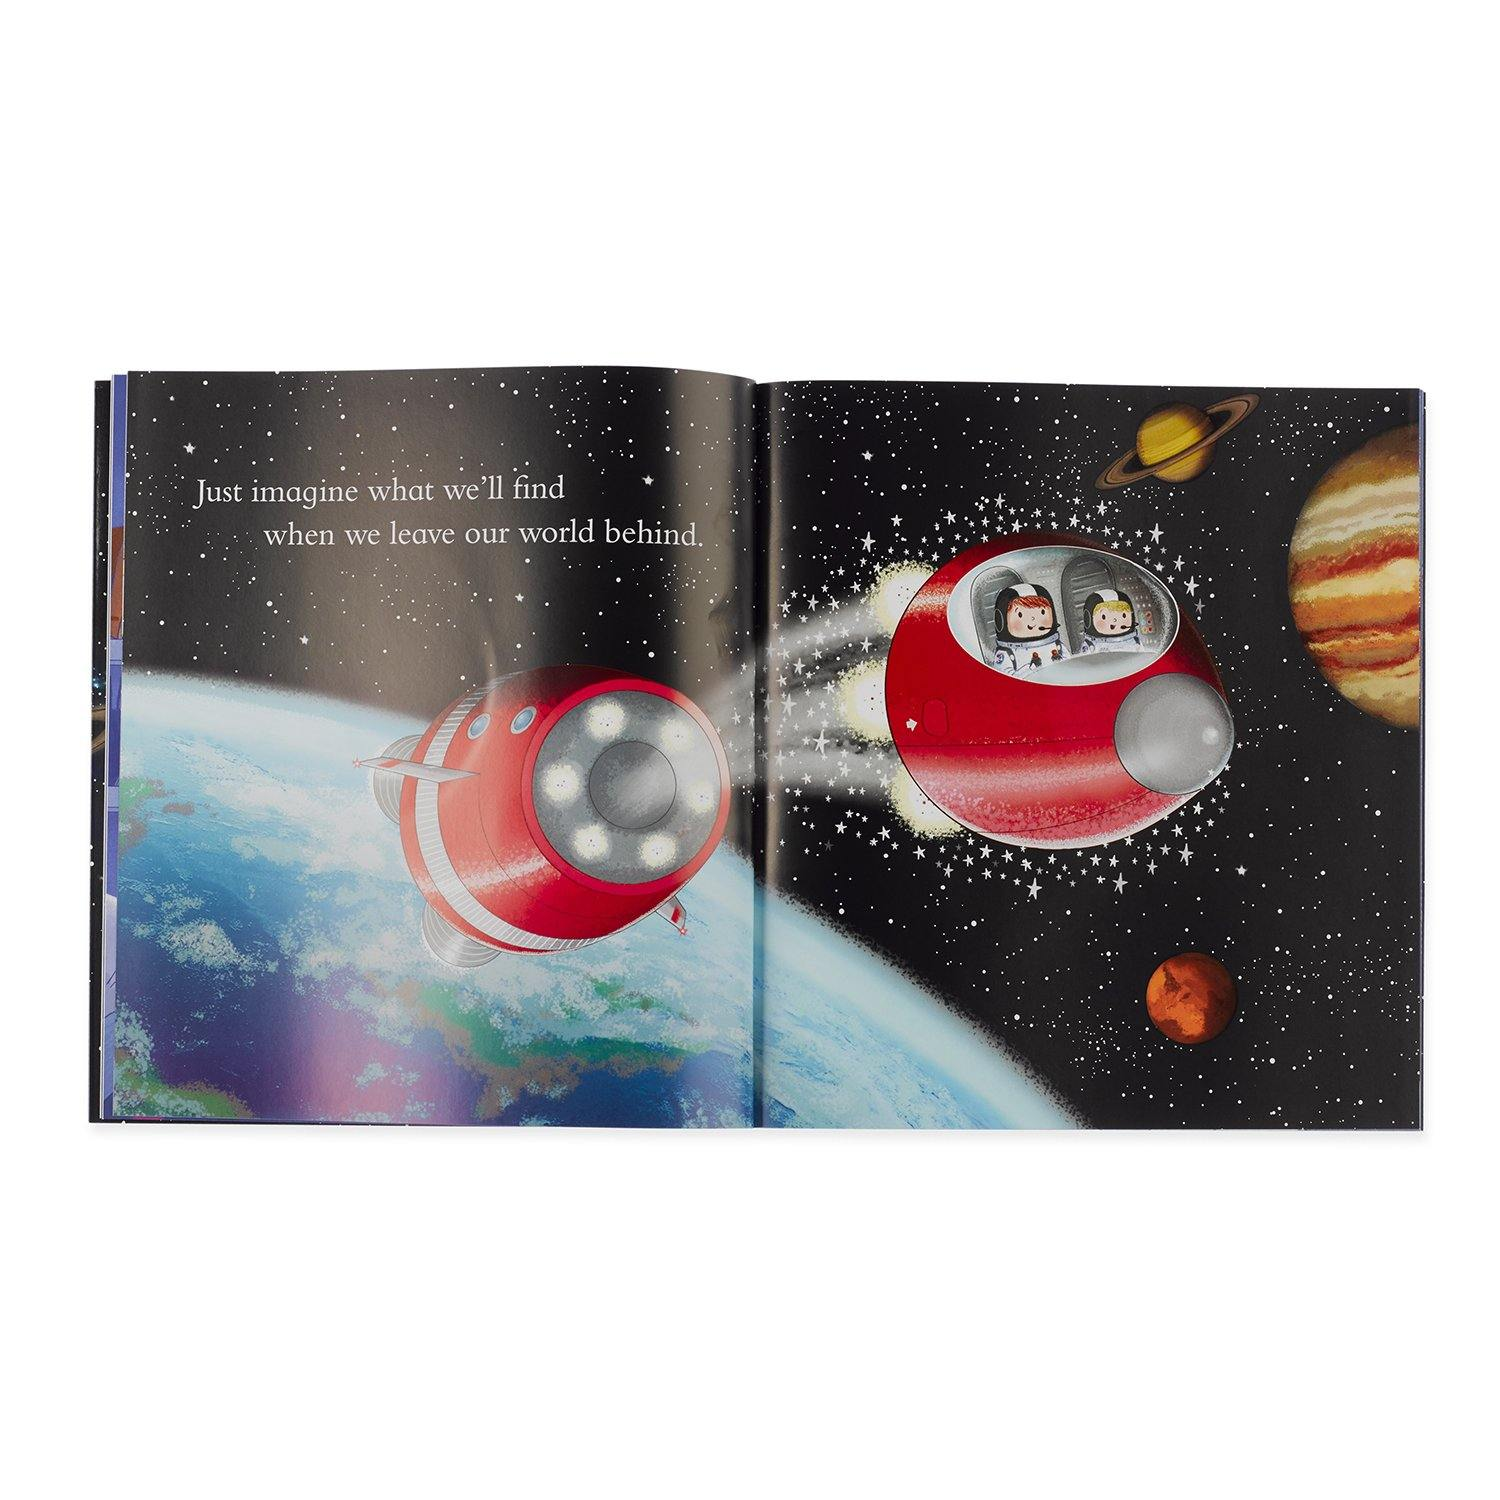 Goodnight Spaceman Book with CD2